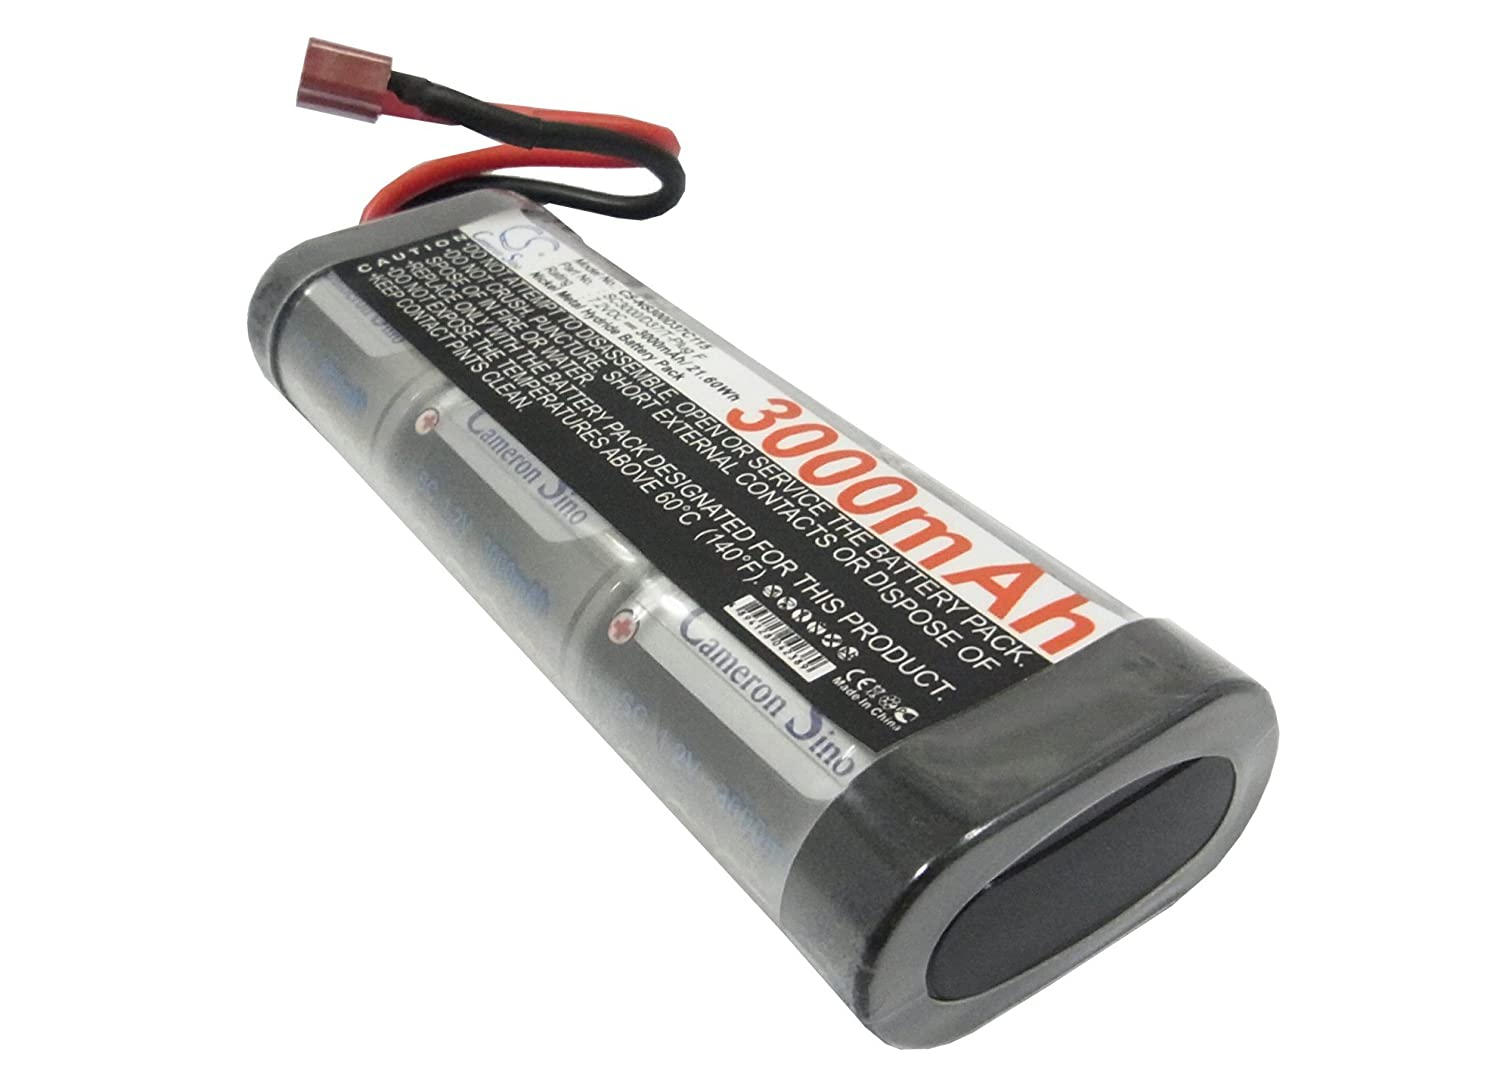 Cameron Sino – Batteria 3000 mAh Compatibile con RC cs-ns300d37 C115